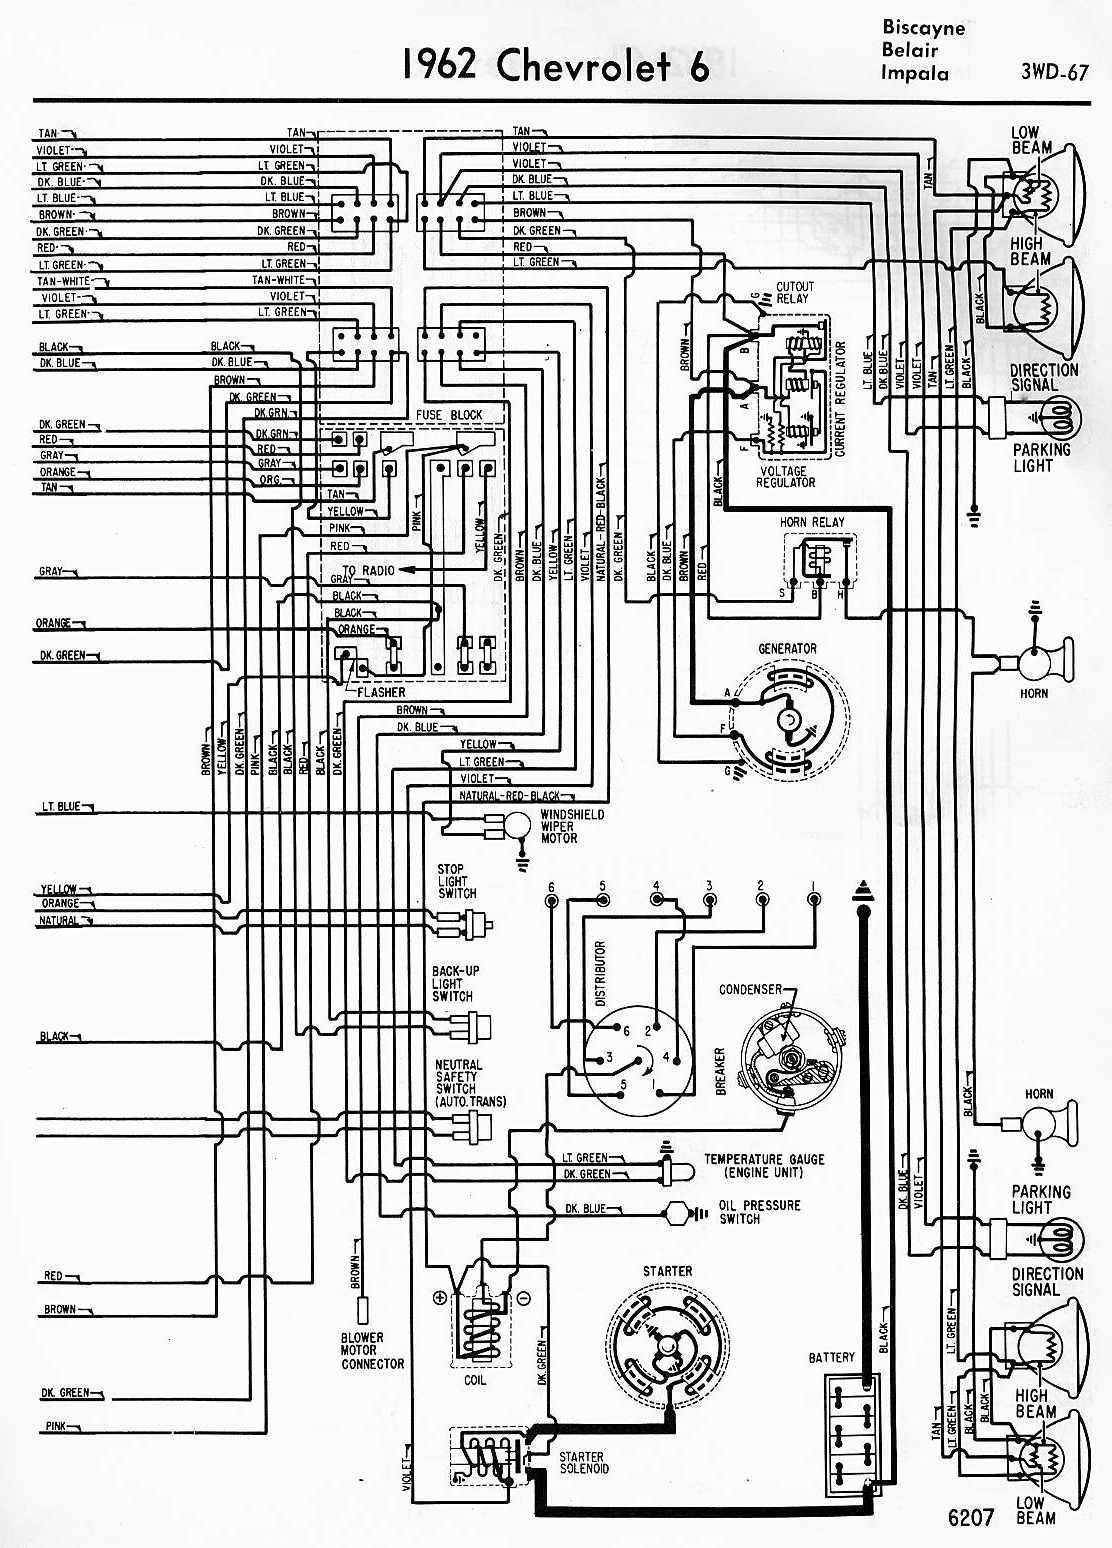 medium resolution of 67 imperial window wiring diagram wiring diagrams rh 35 jennifer retzke de 64 imperial 65 imperial